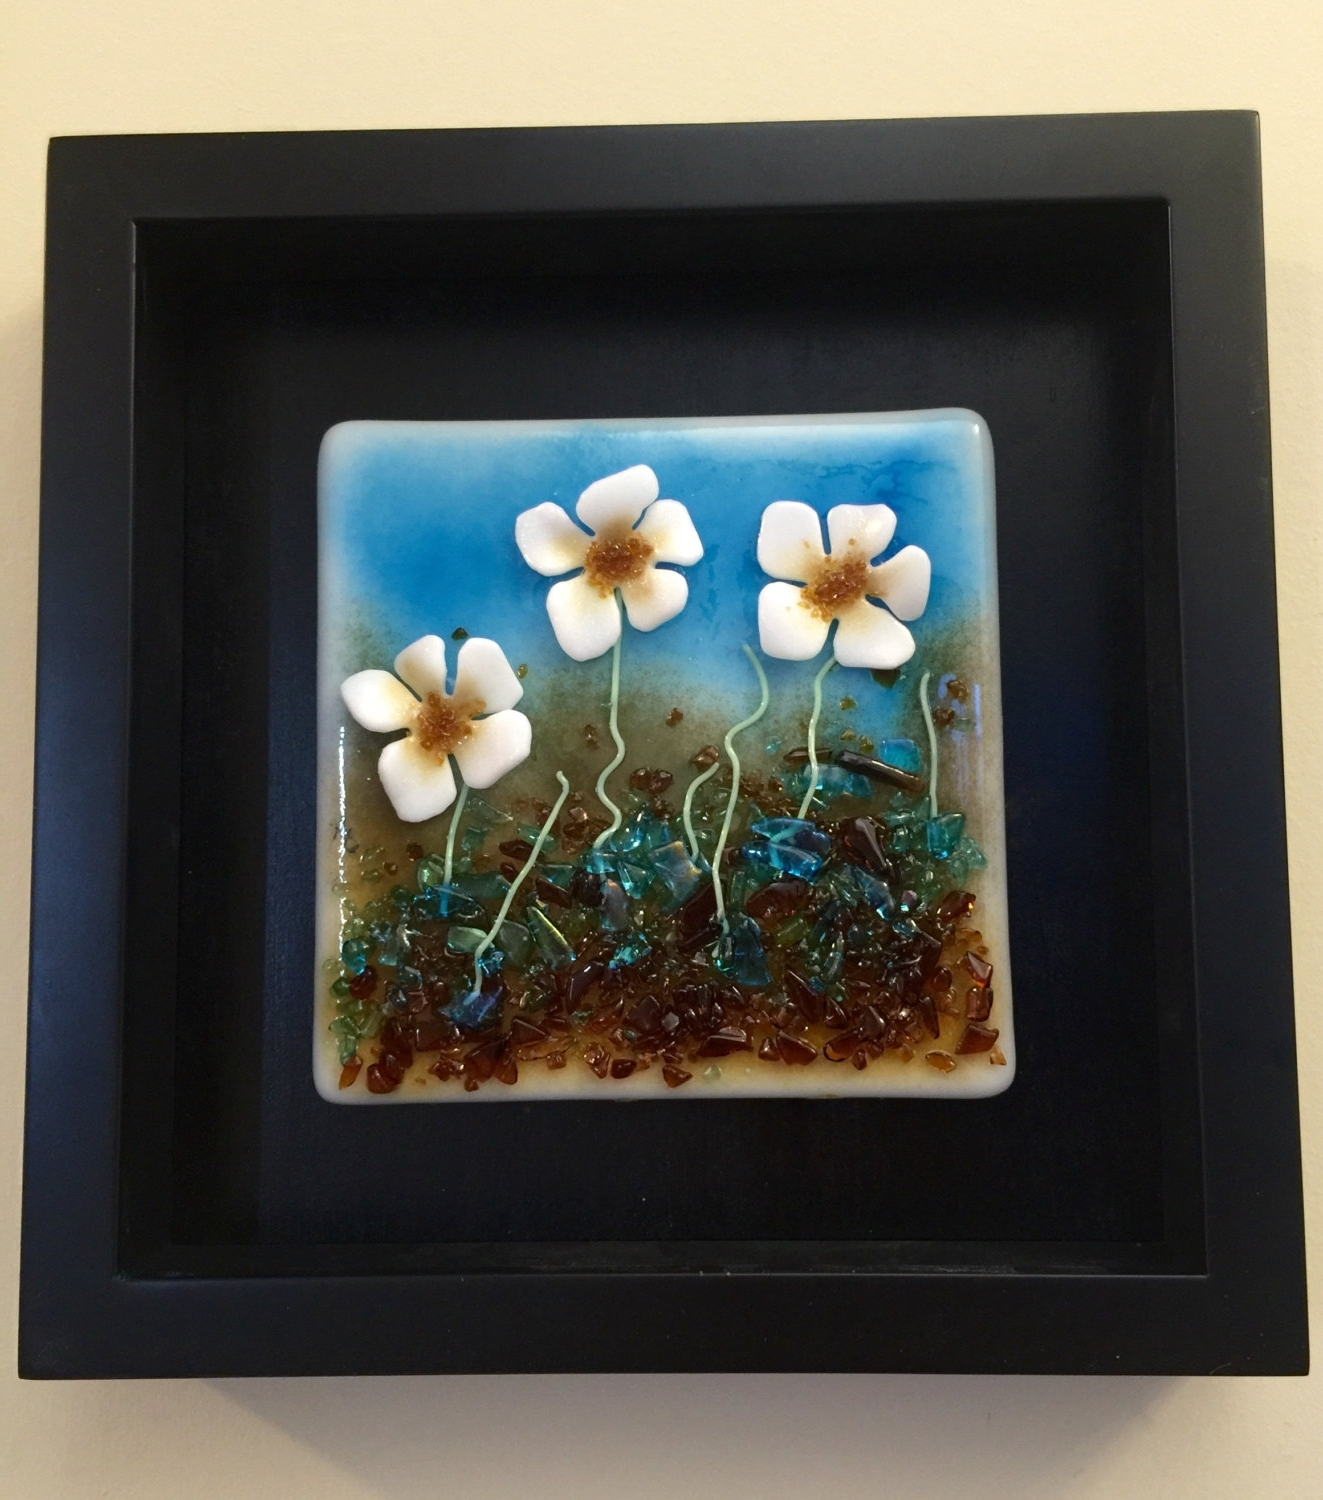 Home Decor, Fused Glass, Handmade Fused Glass, Wall Panel, Fused With Trendy Fused Glass Art For Walls (View 9 of 15)